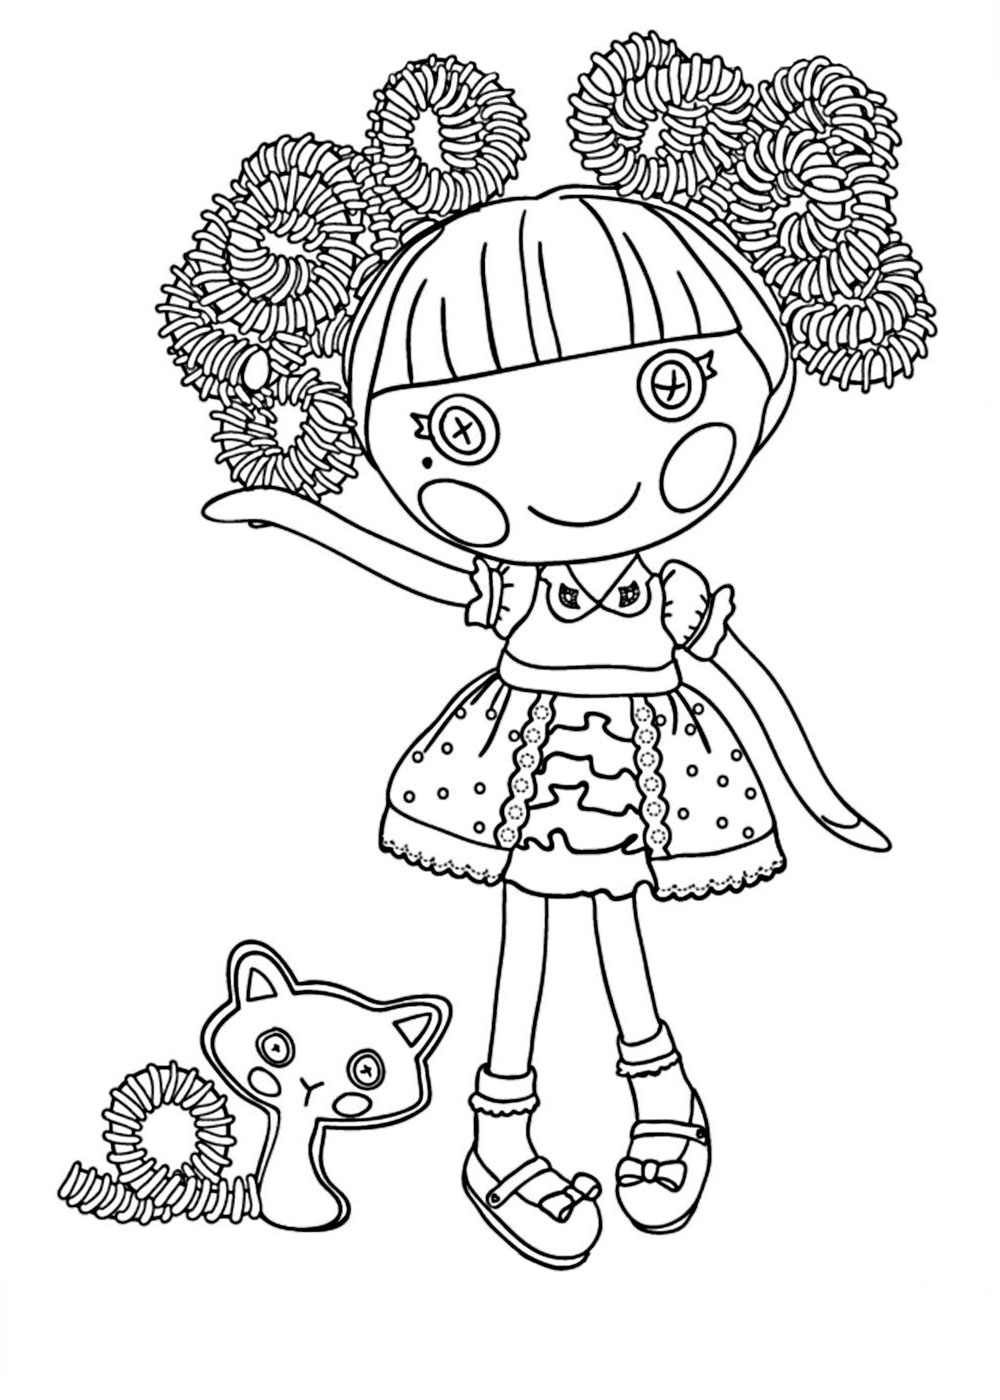 1000x1400 Lalaloopsy Coloring Pages Coloring Pages Lalaloopsy Coloring Pages